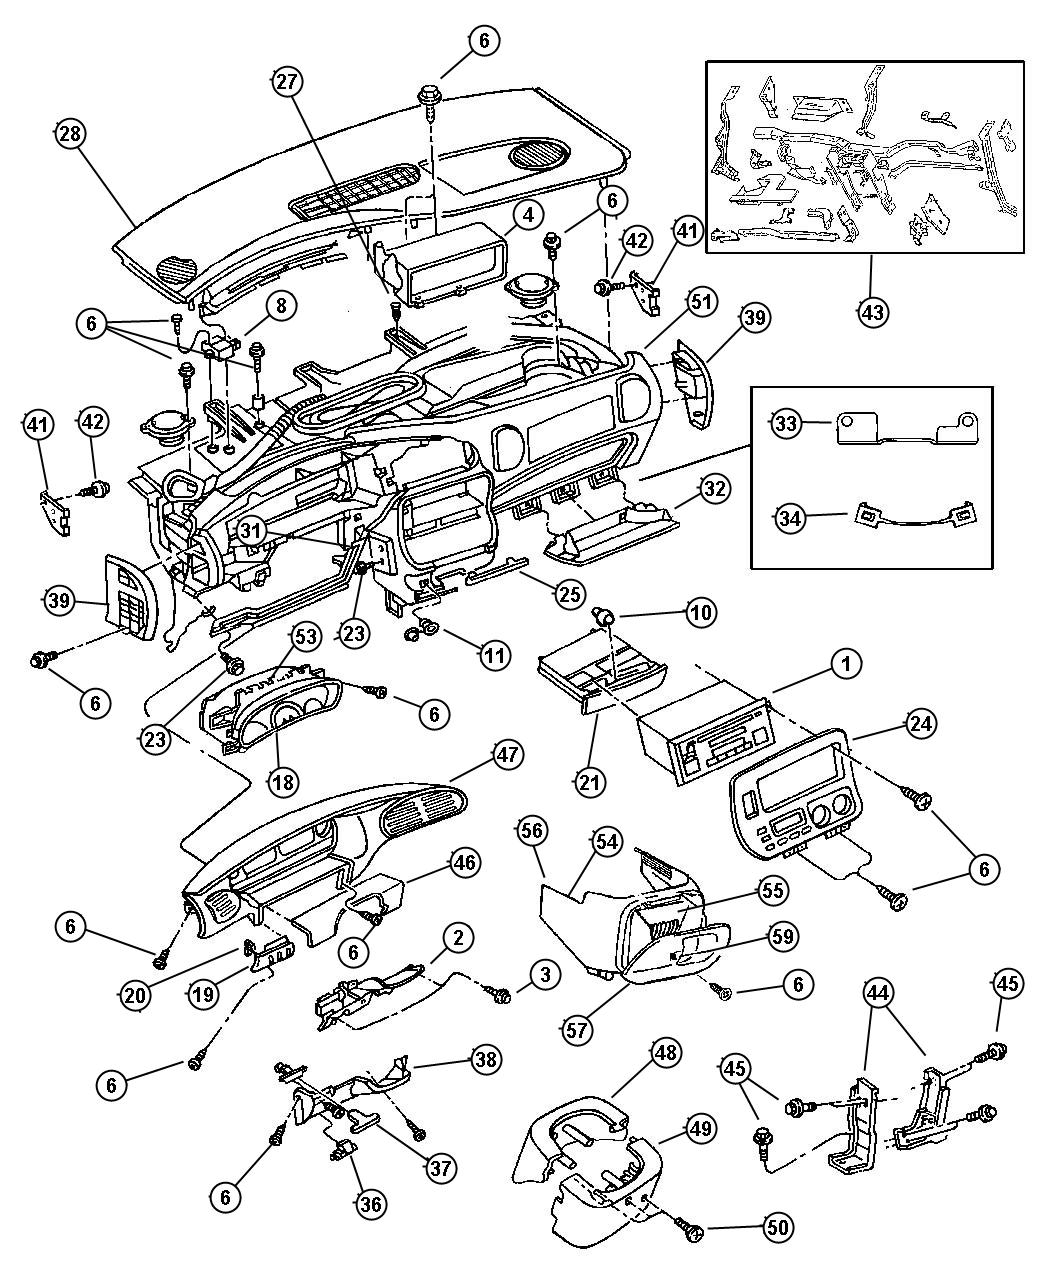 Wrg 97 Sebring Engine Diagram